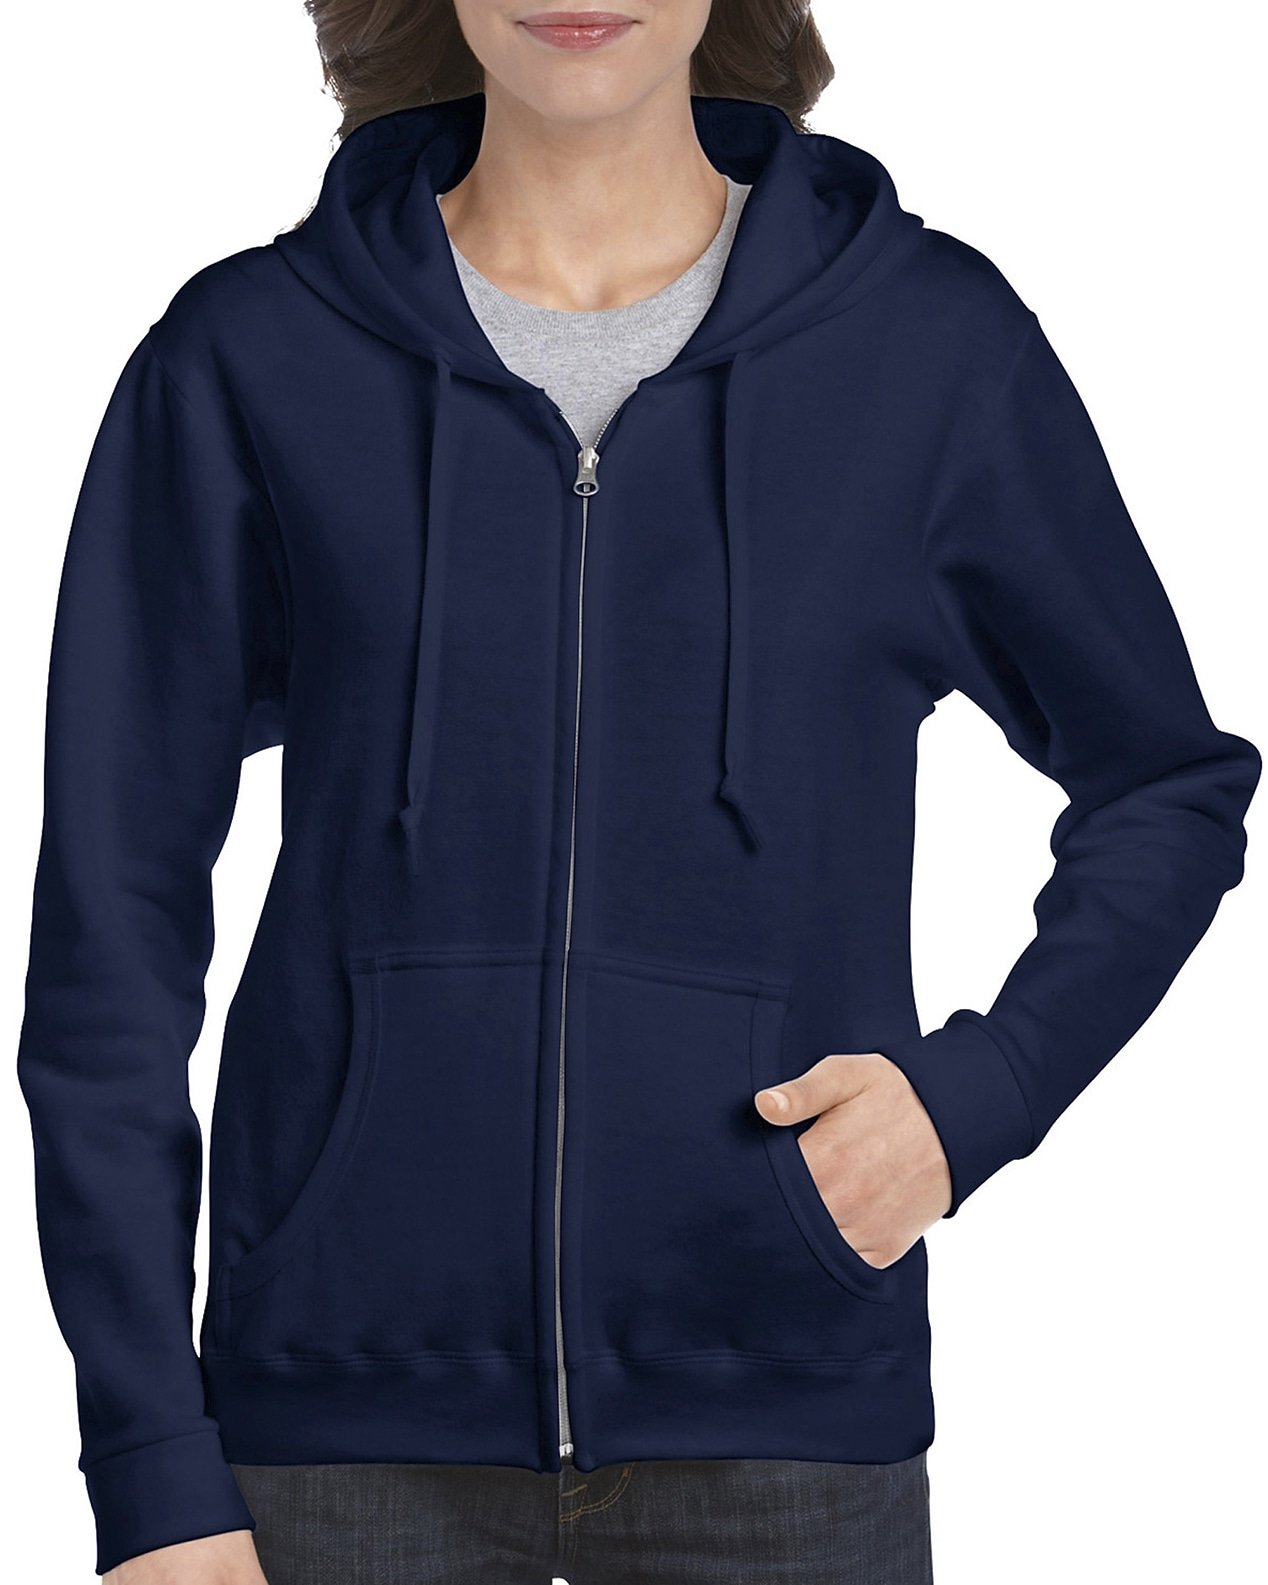 Gildan Women's Full Zip Hooded Sweatshirt, Navy, Small